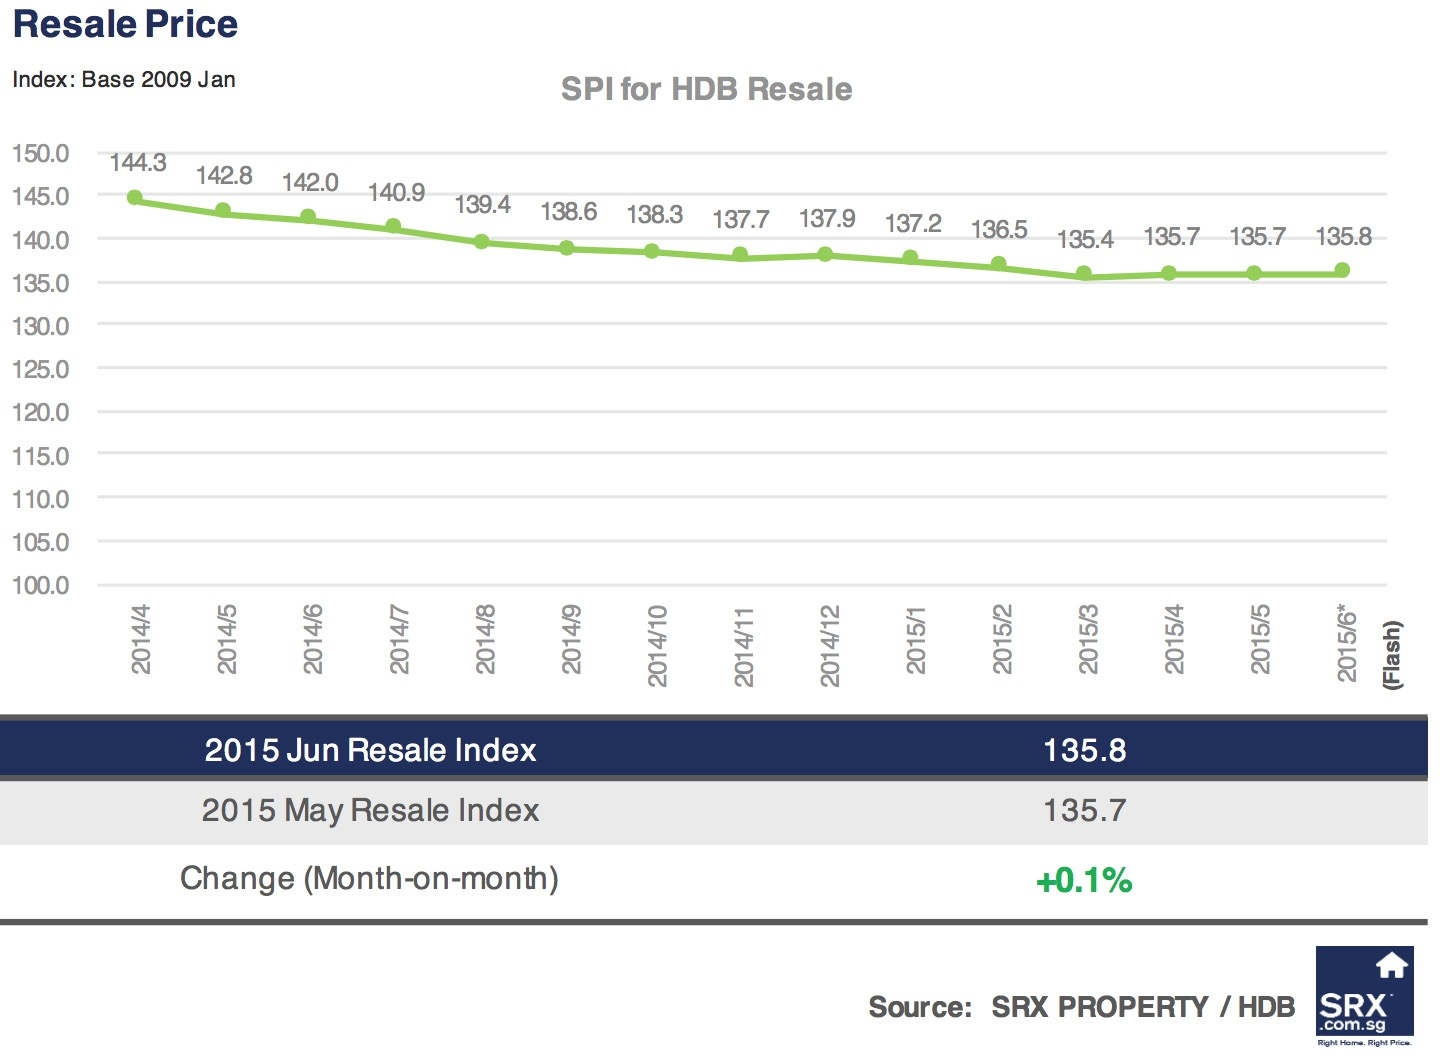 http://www.srx.com.sg/singapore-property-news/9131/headline-hdb-resale-price-up-01-in-june-highest-resale-volume-in-two-years